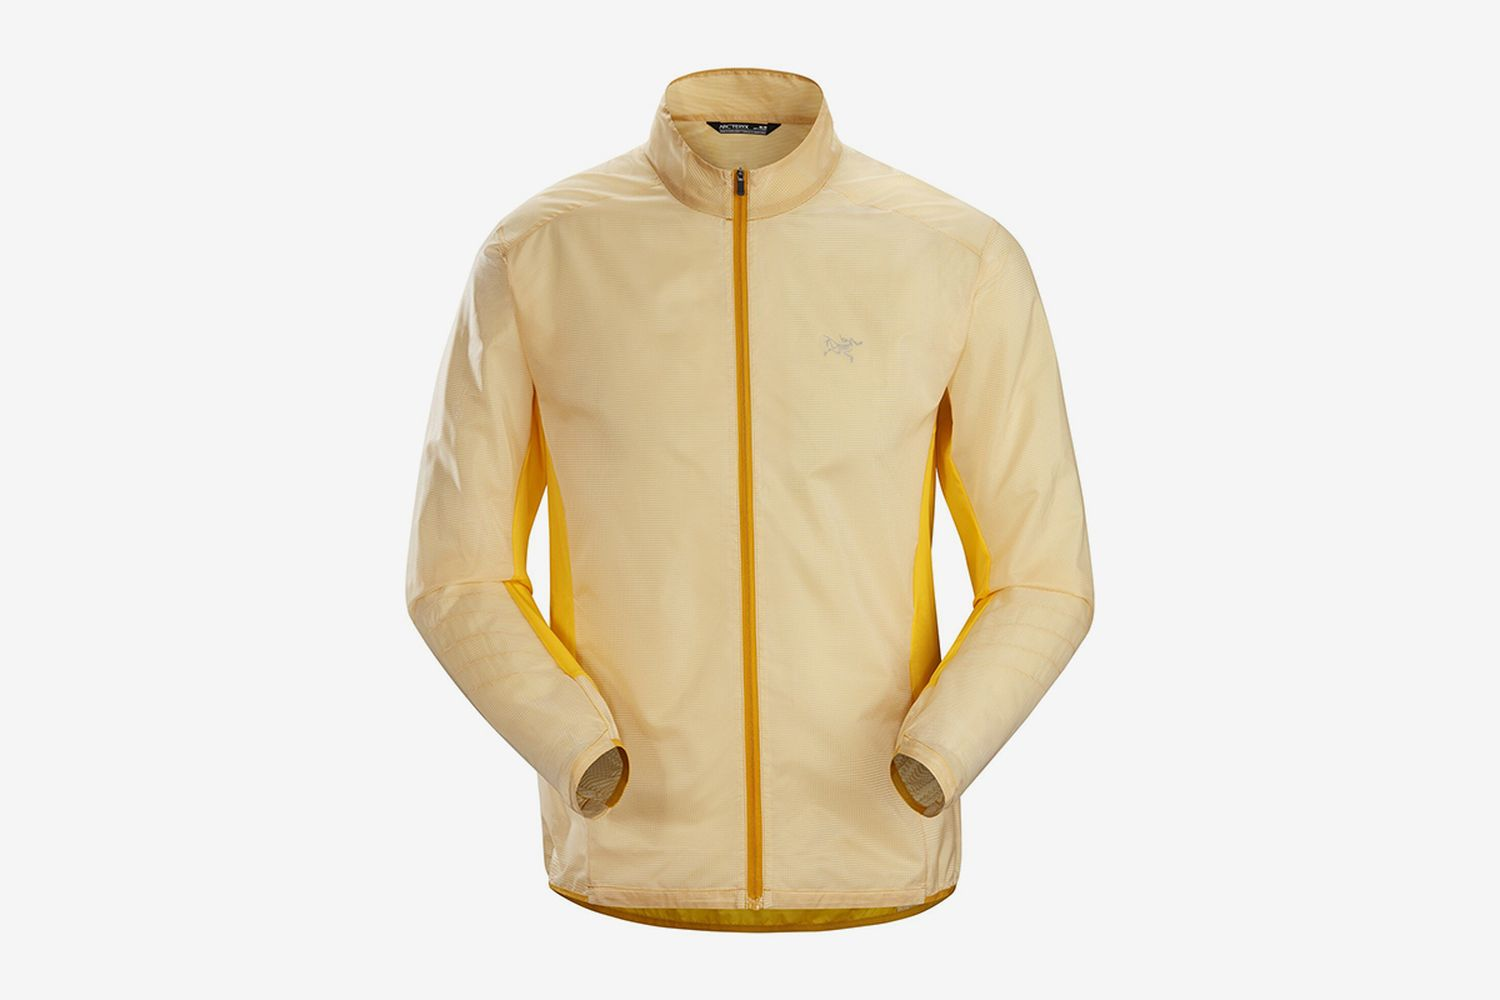 Incendo SL Jacket